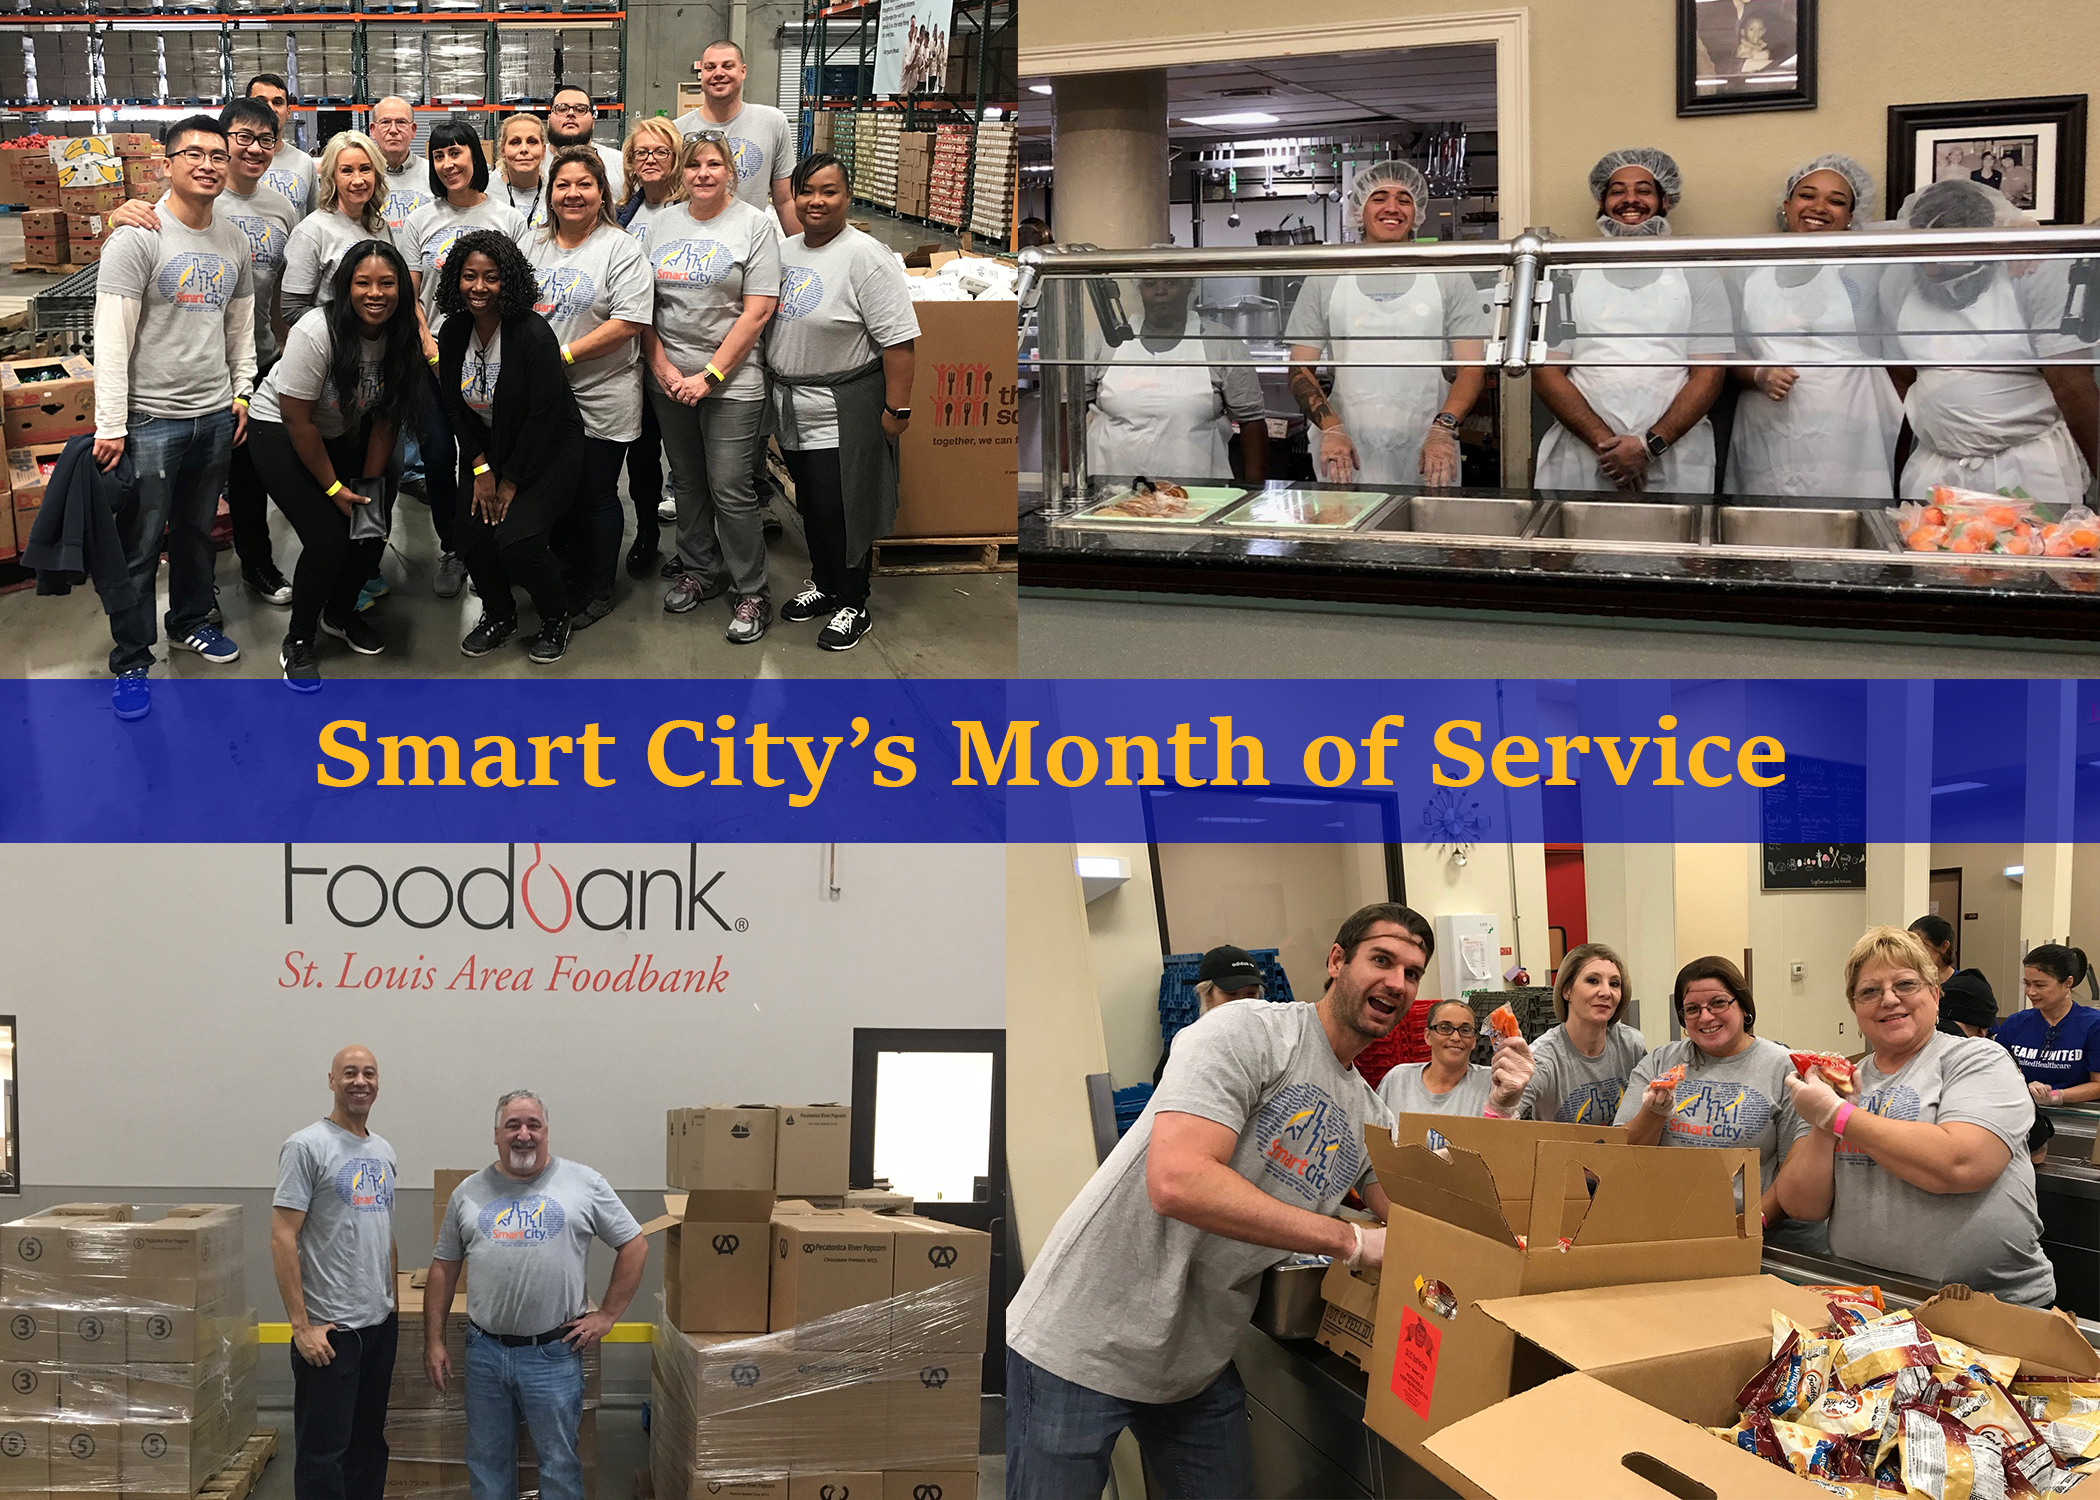 Smart City Networks Launches Month of Service Initiative